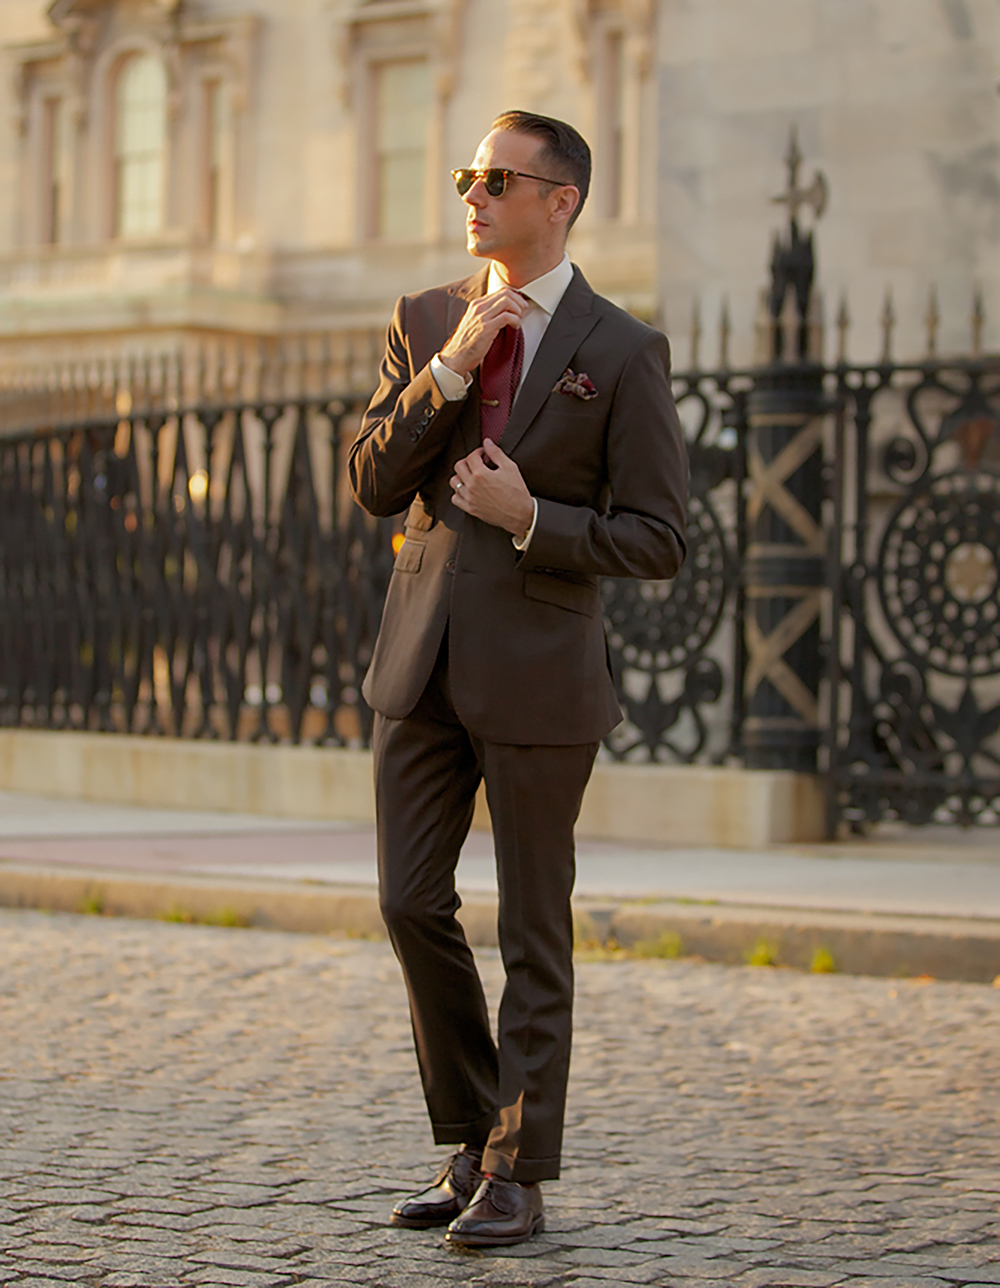 Brown suit with white shirt, burgundy tie and burgundy shoes